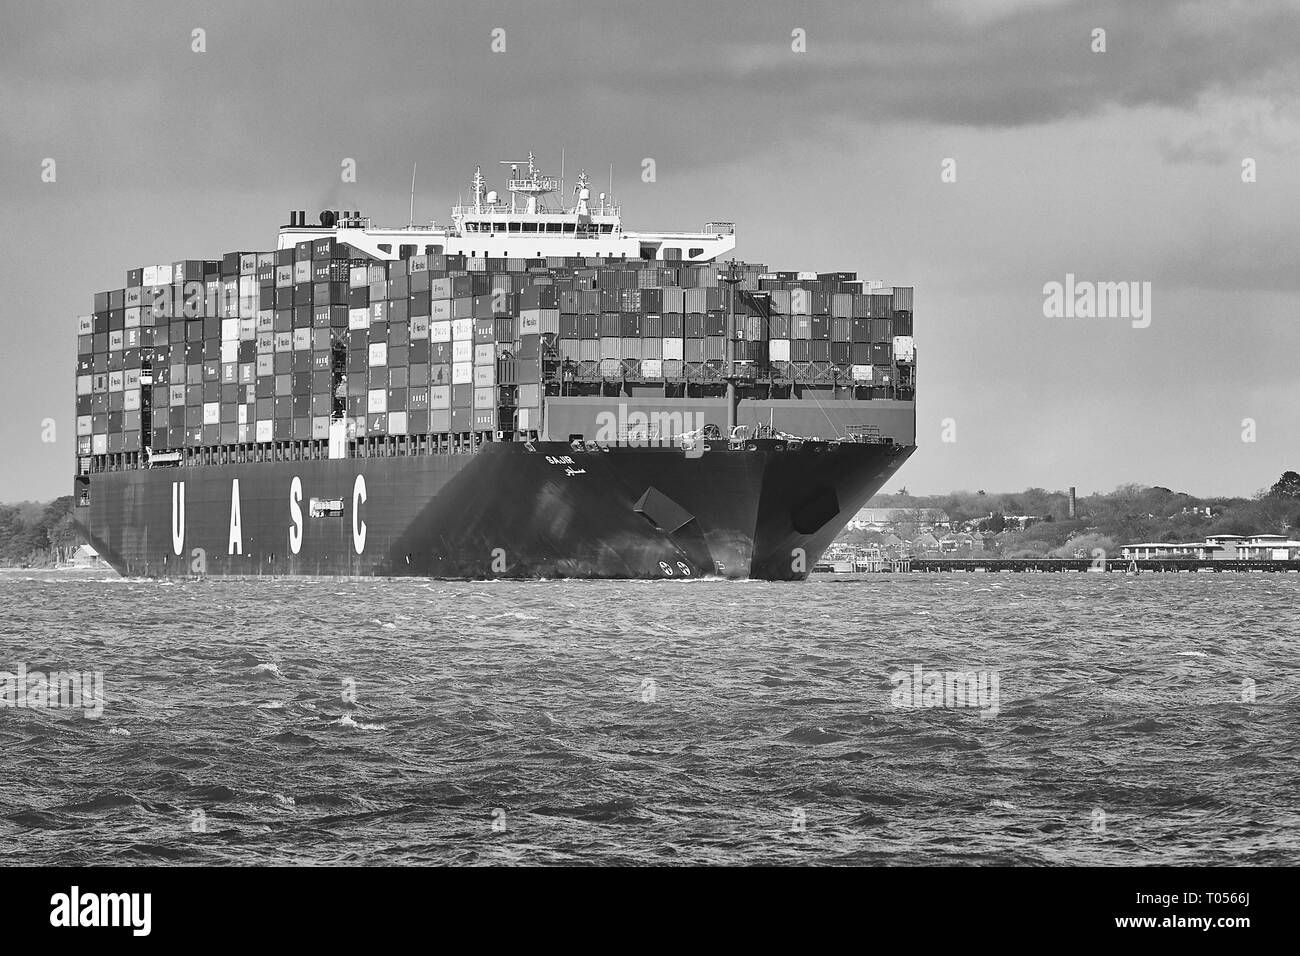 Black & White Image Of The Fully Loaded Ultra-Large UASC Container Ship, SAJIR, Departing The Port Of Southampton, Hampshire, United Kingdom. - Stock Image